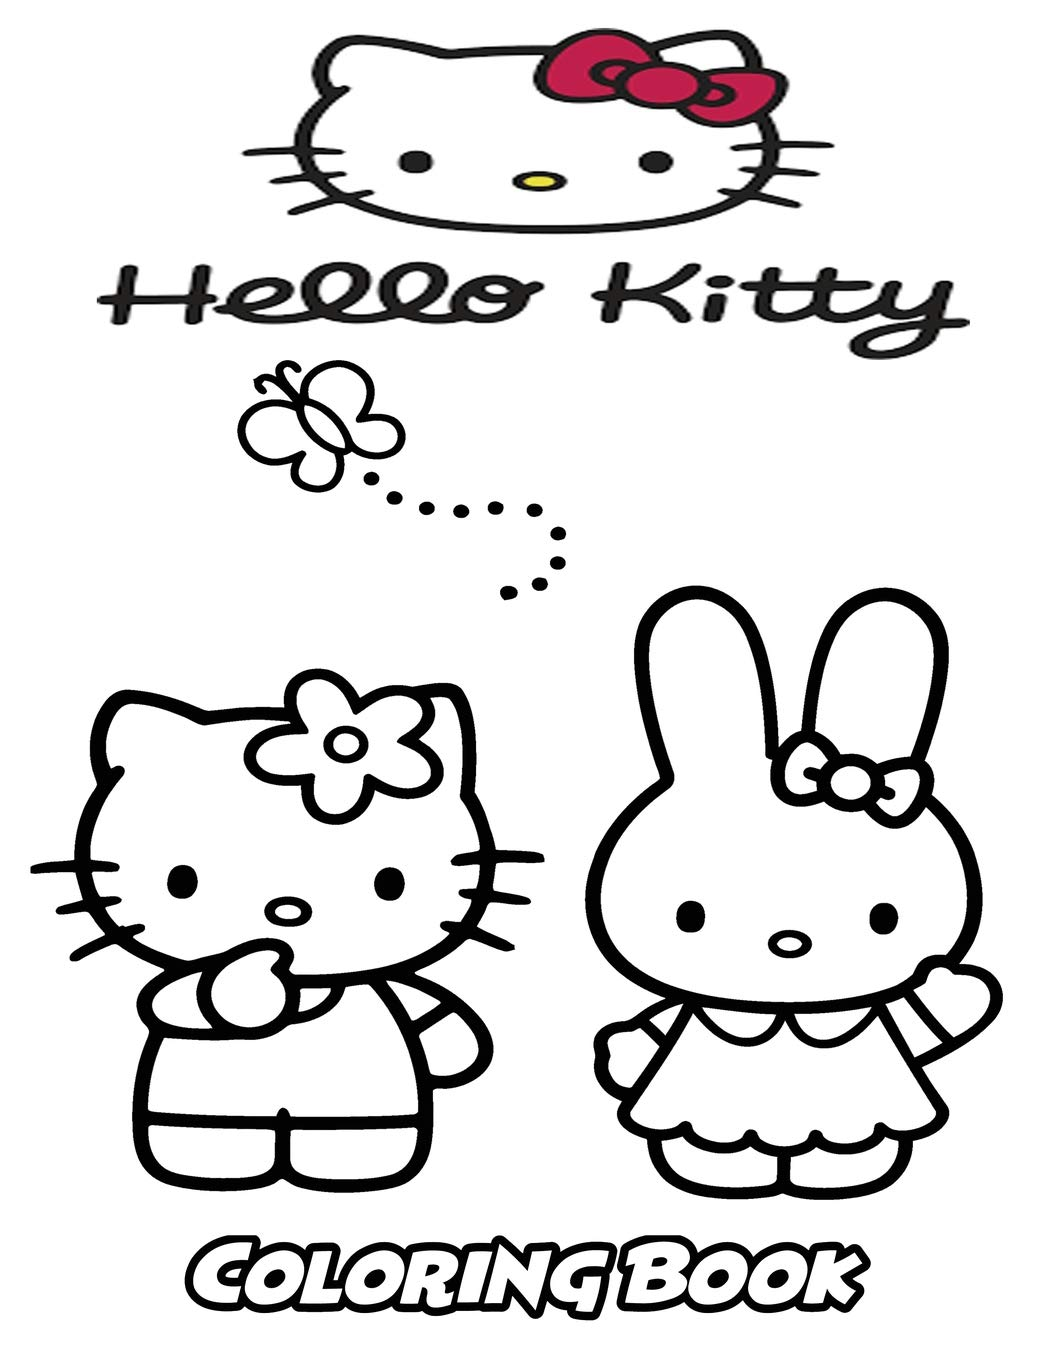 Hello kitty coloring book coloring book for kids and adults activity book with fun easy and relaxing coloring pages perfect for children ages 3 5 6 8